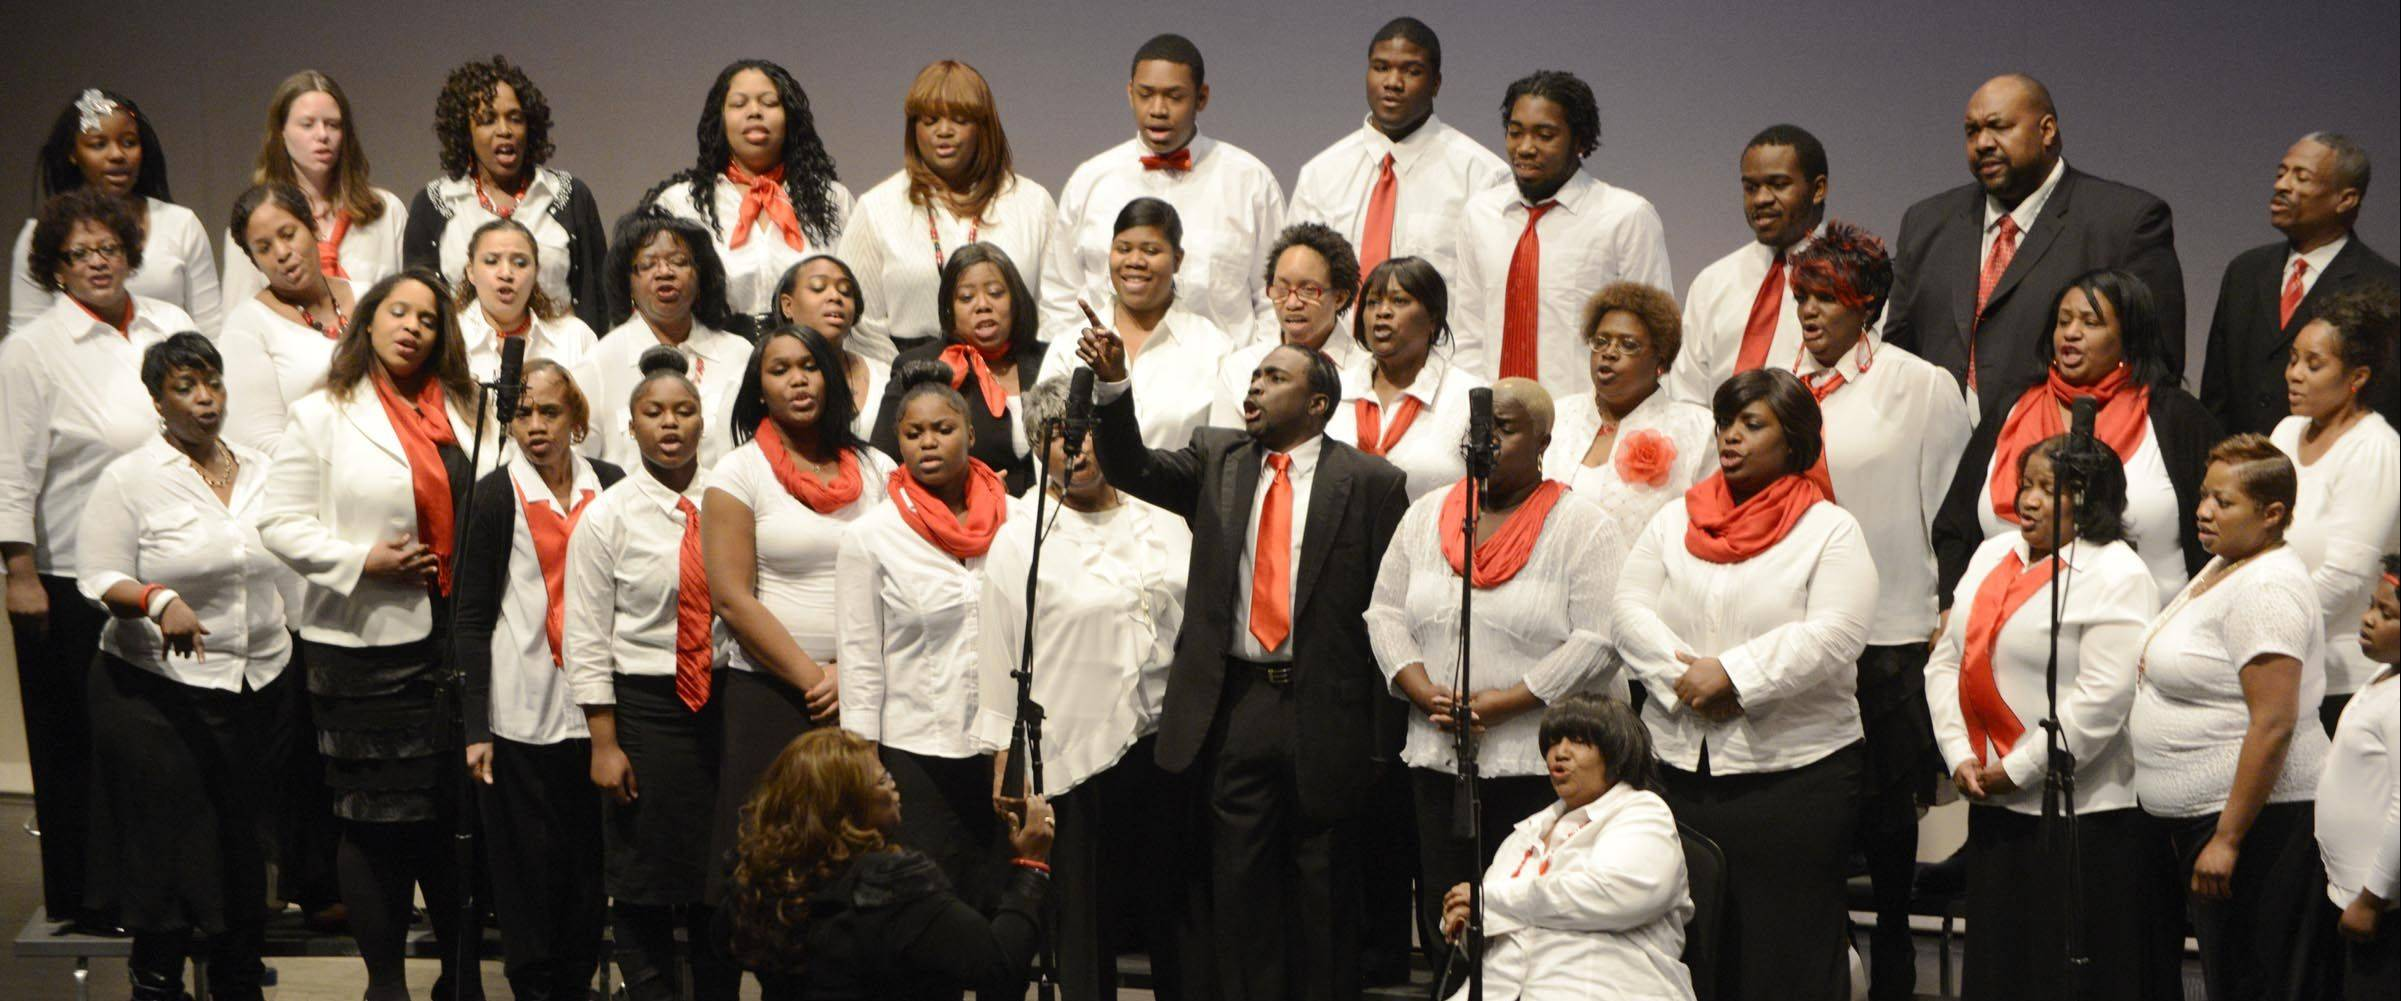 The Elgin Community Choir performs Sunday during the 29th Annual Dr. Martin Luther King Jr. program at the Hemmens Auditorium in Elgin.